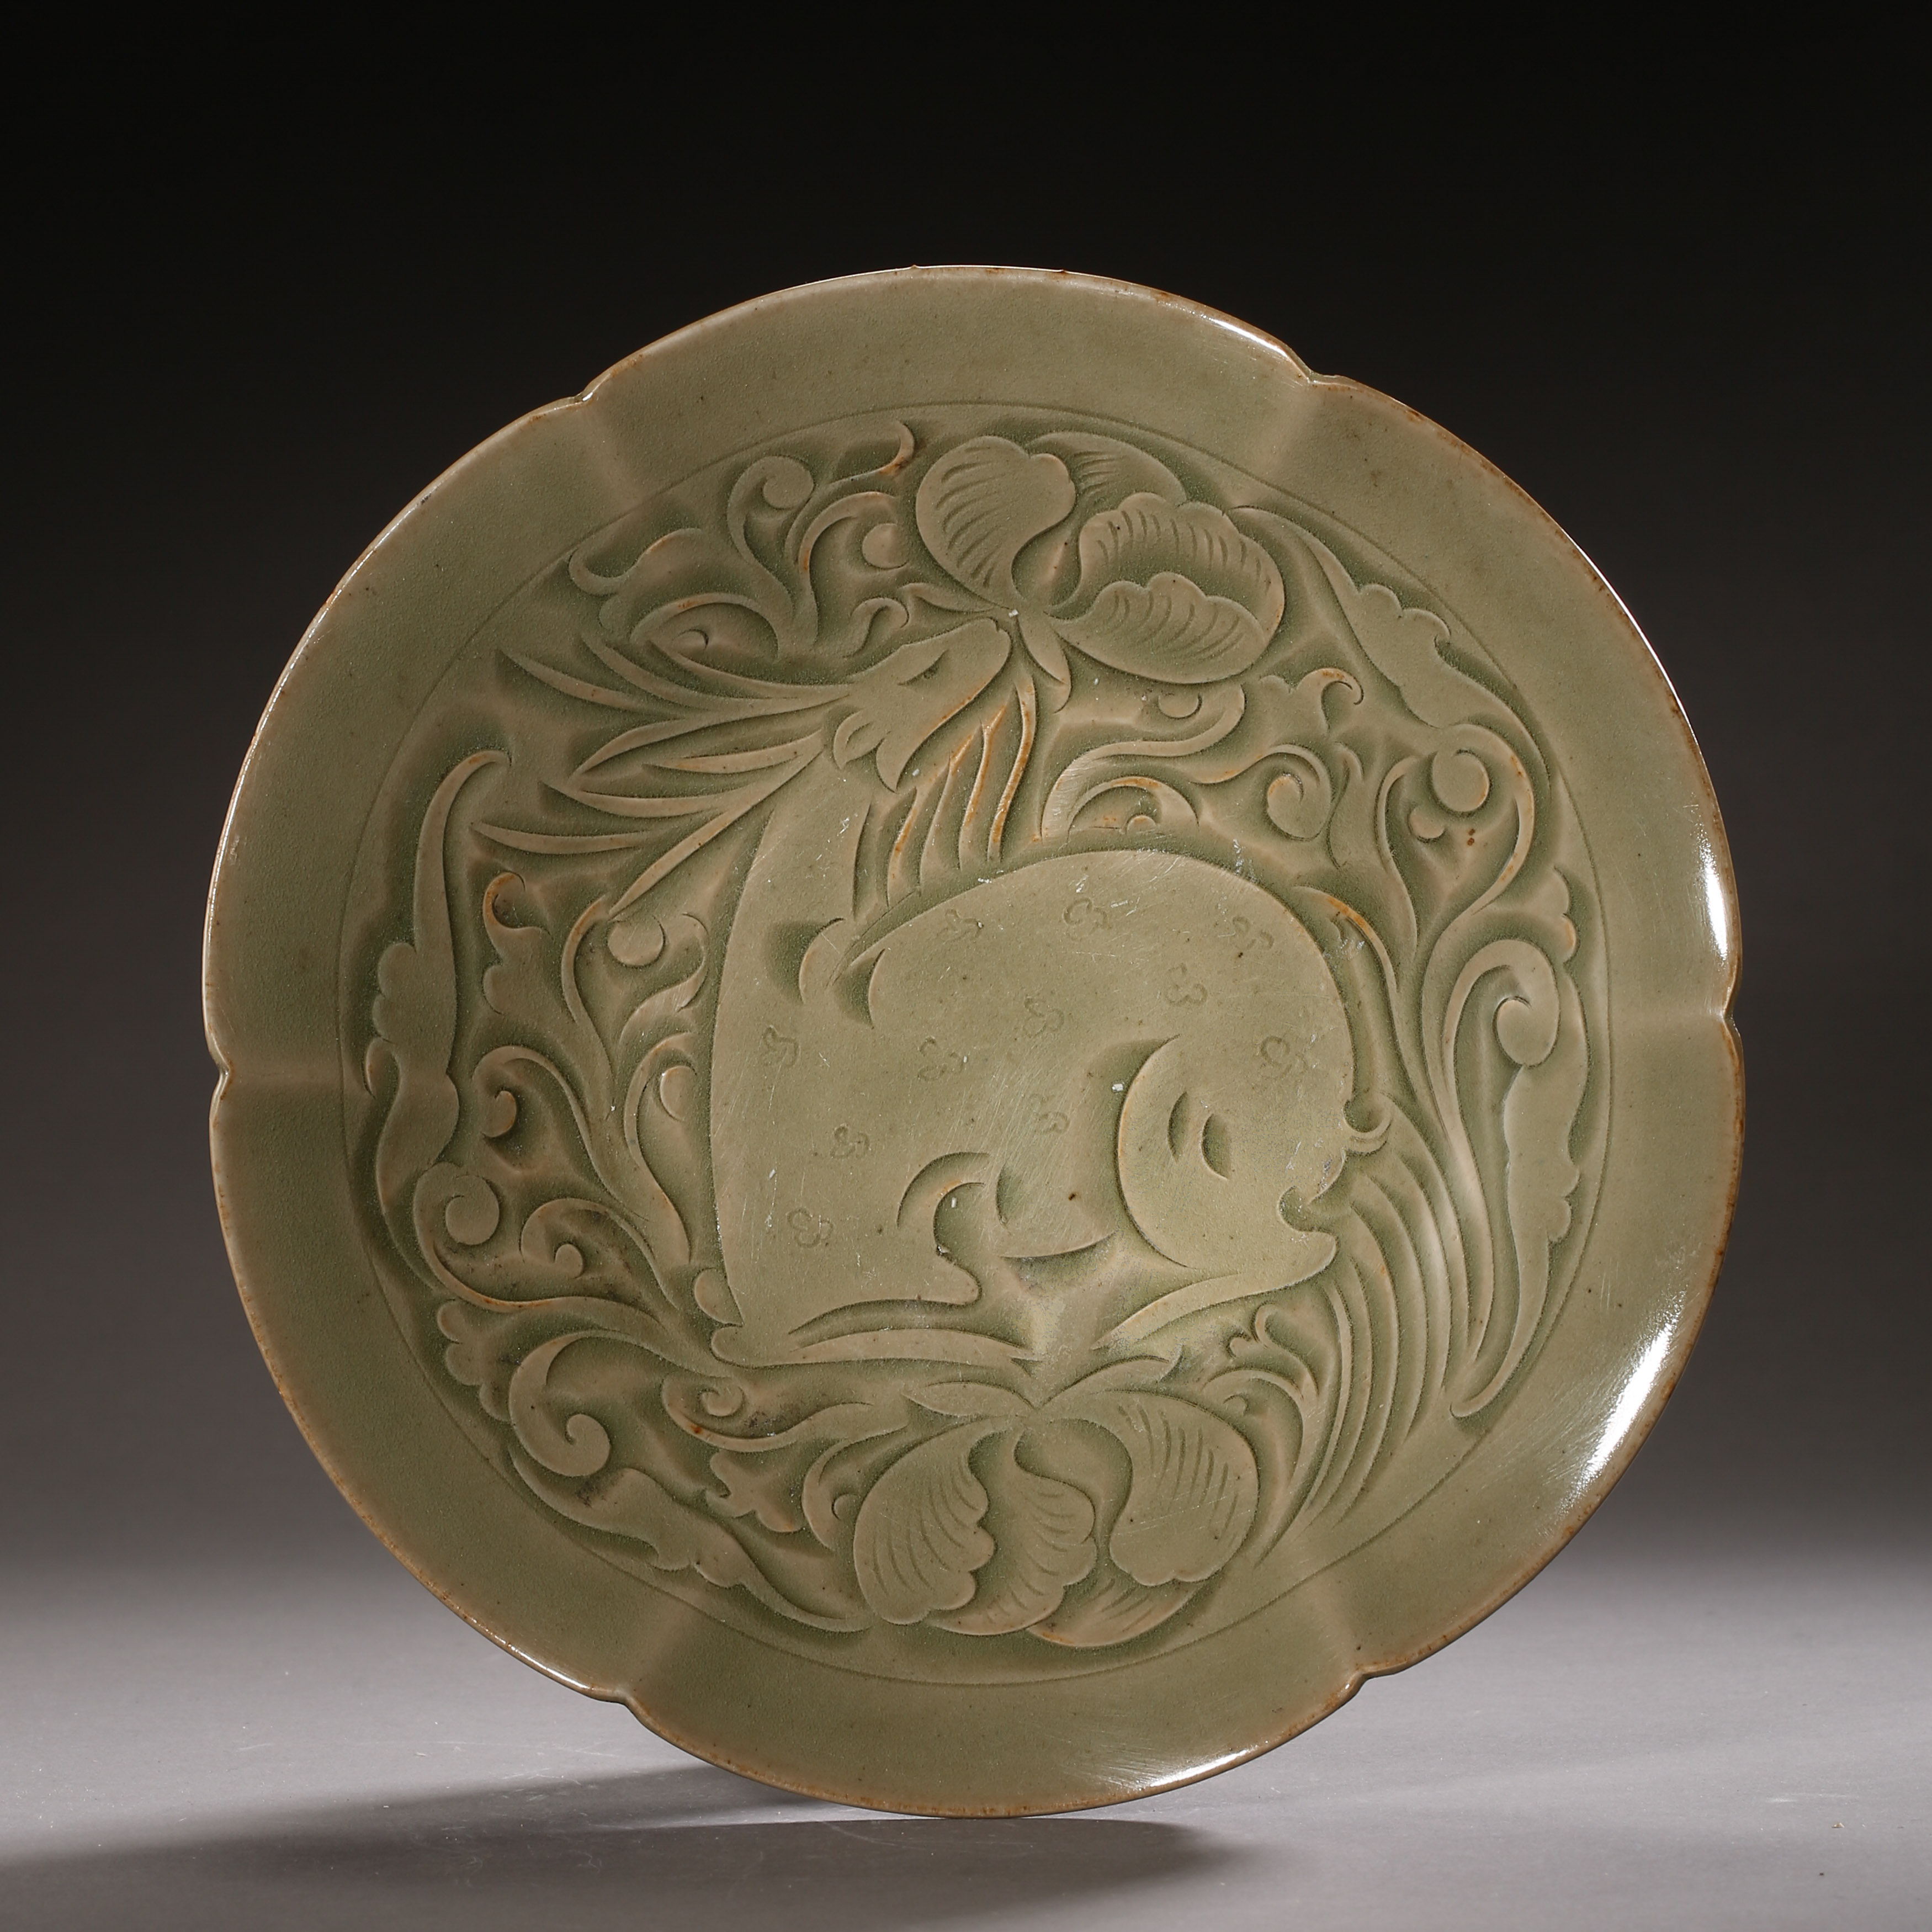 YAOZHOU KILN PLATE WITH RAFFITO DESIGN, NORTHERN SONG DYNASTY, CHINA